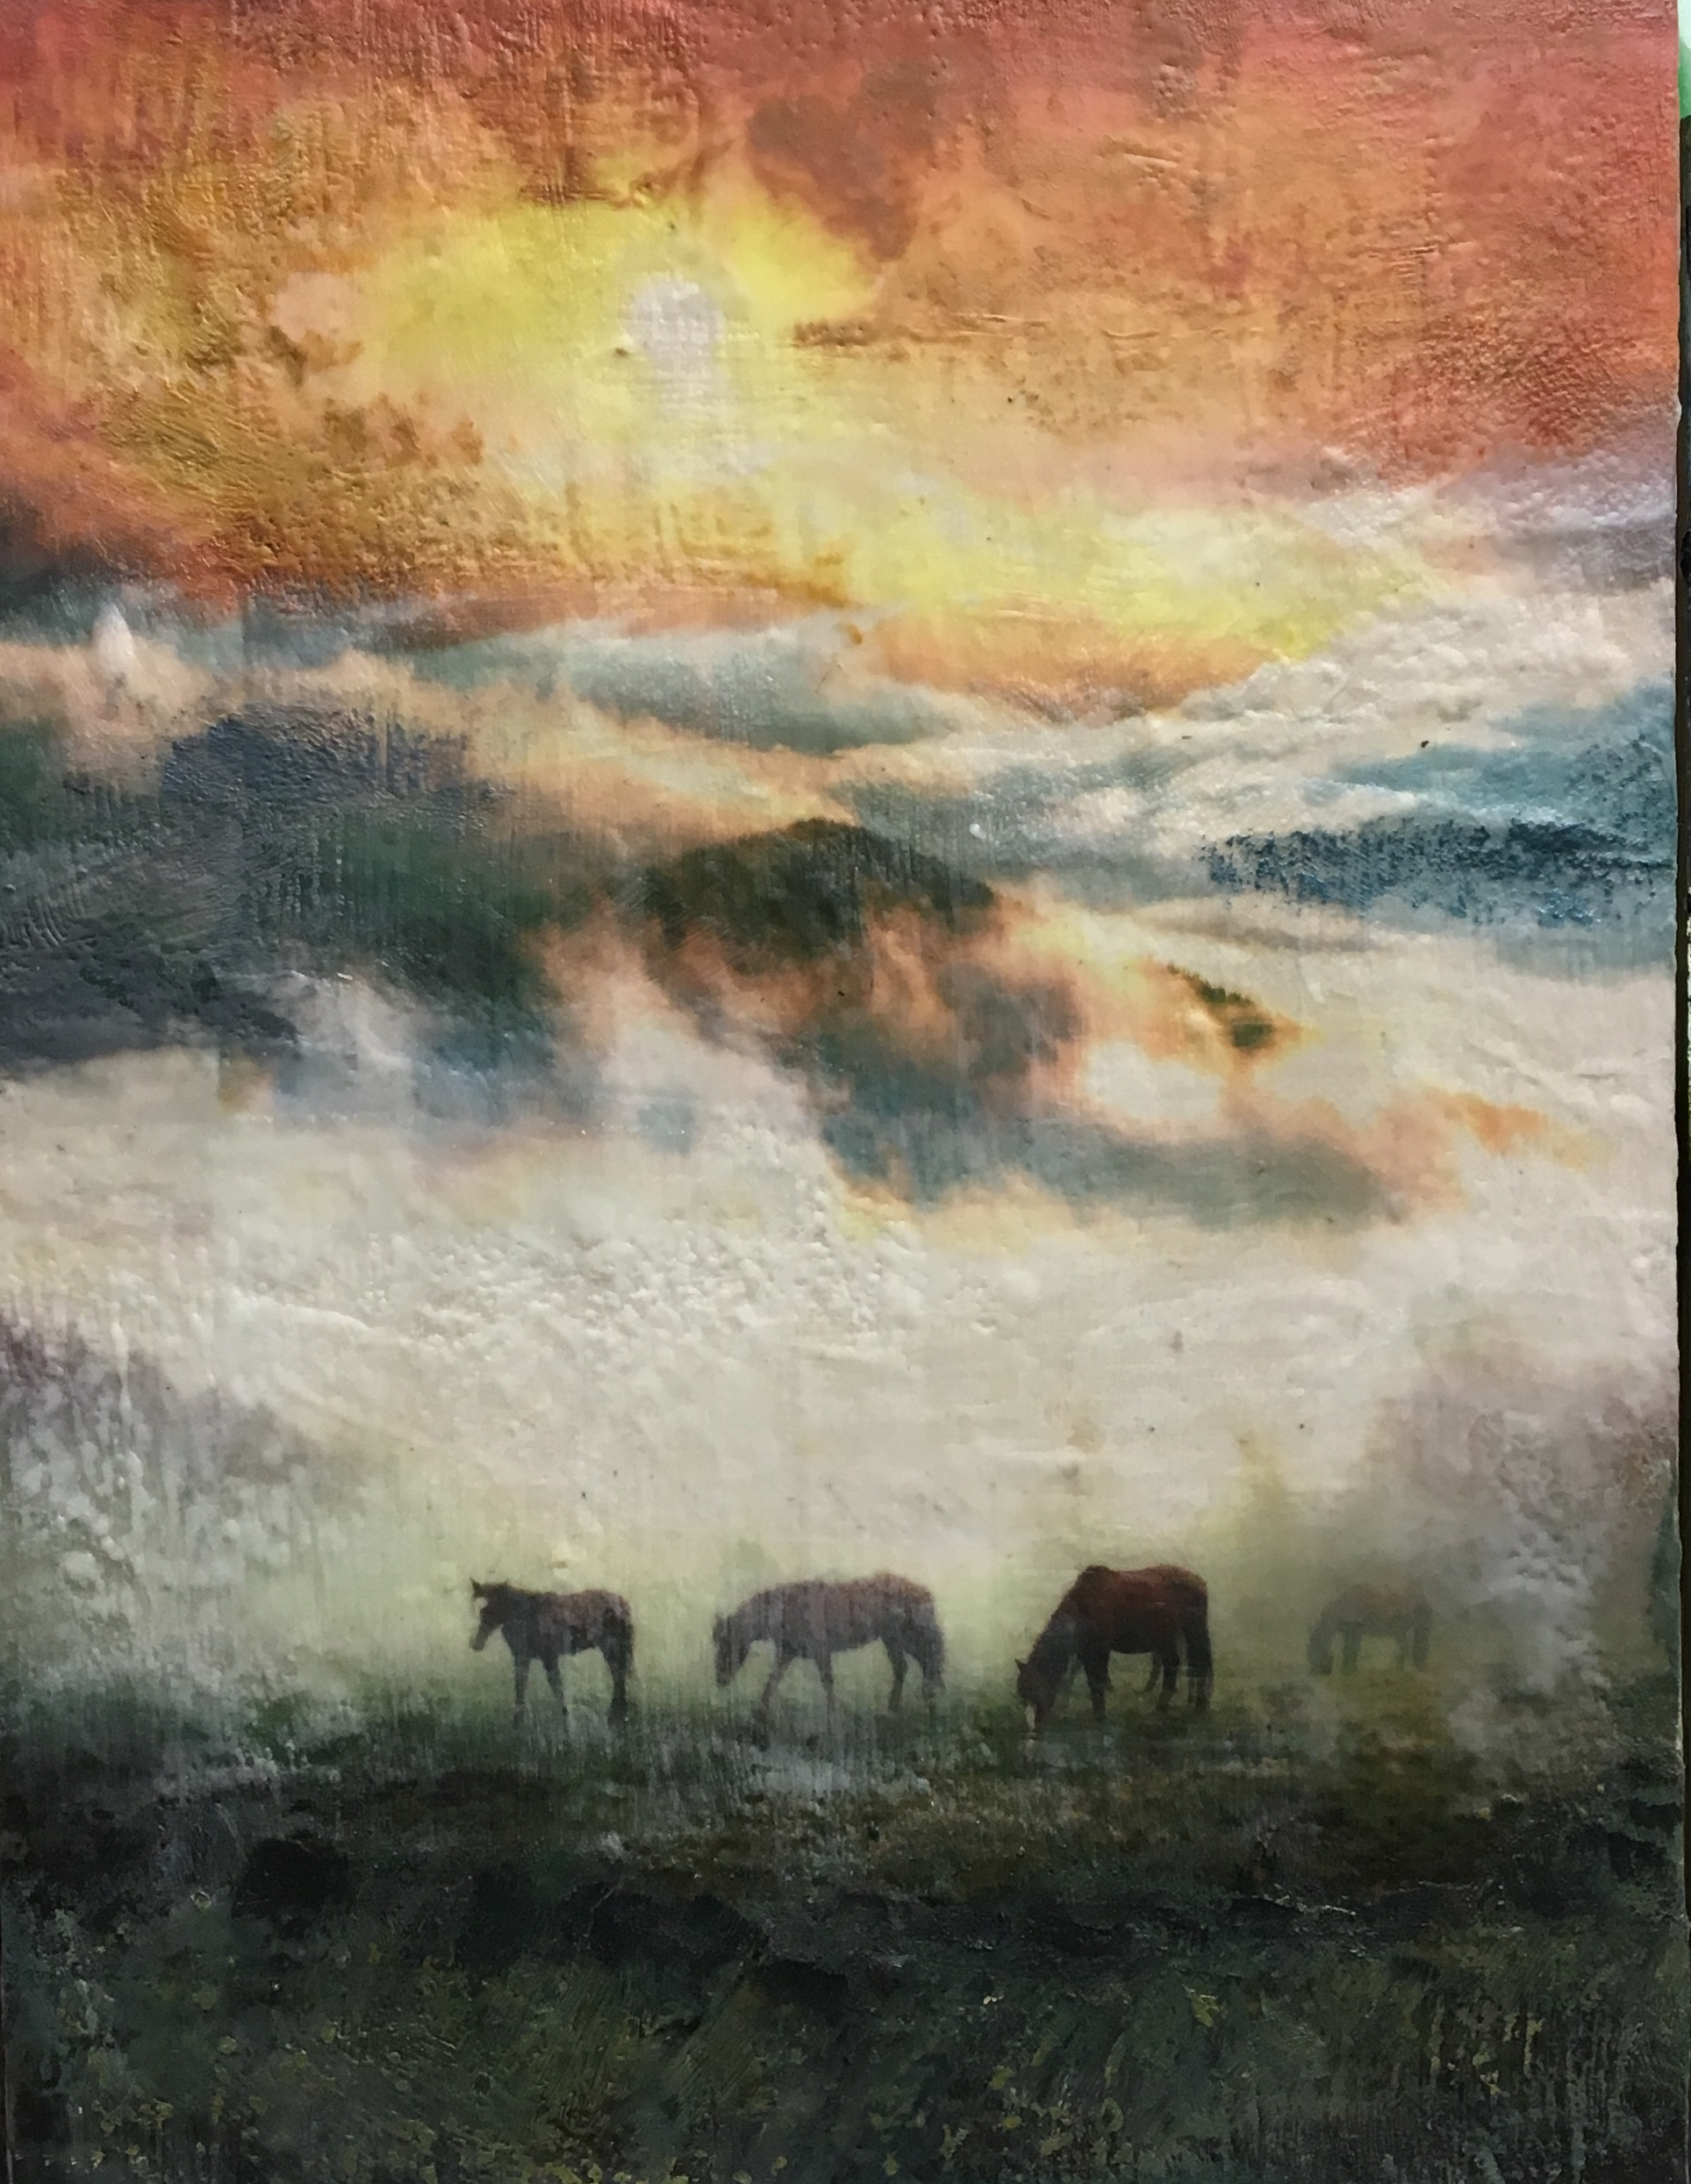 Home on the Range, encaustic painting by Lee Anne LaForge | Effusion Art Gallery + Cast Glass Studio, Invermere BC